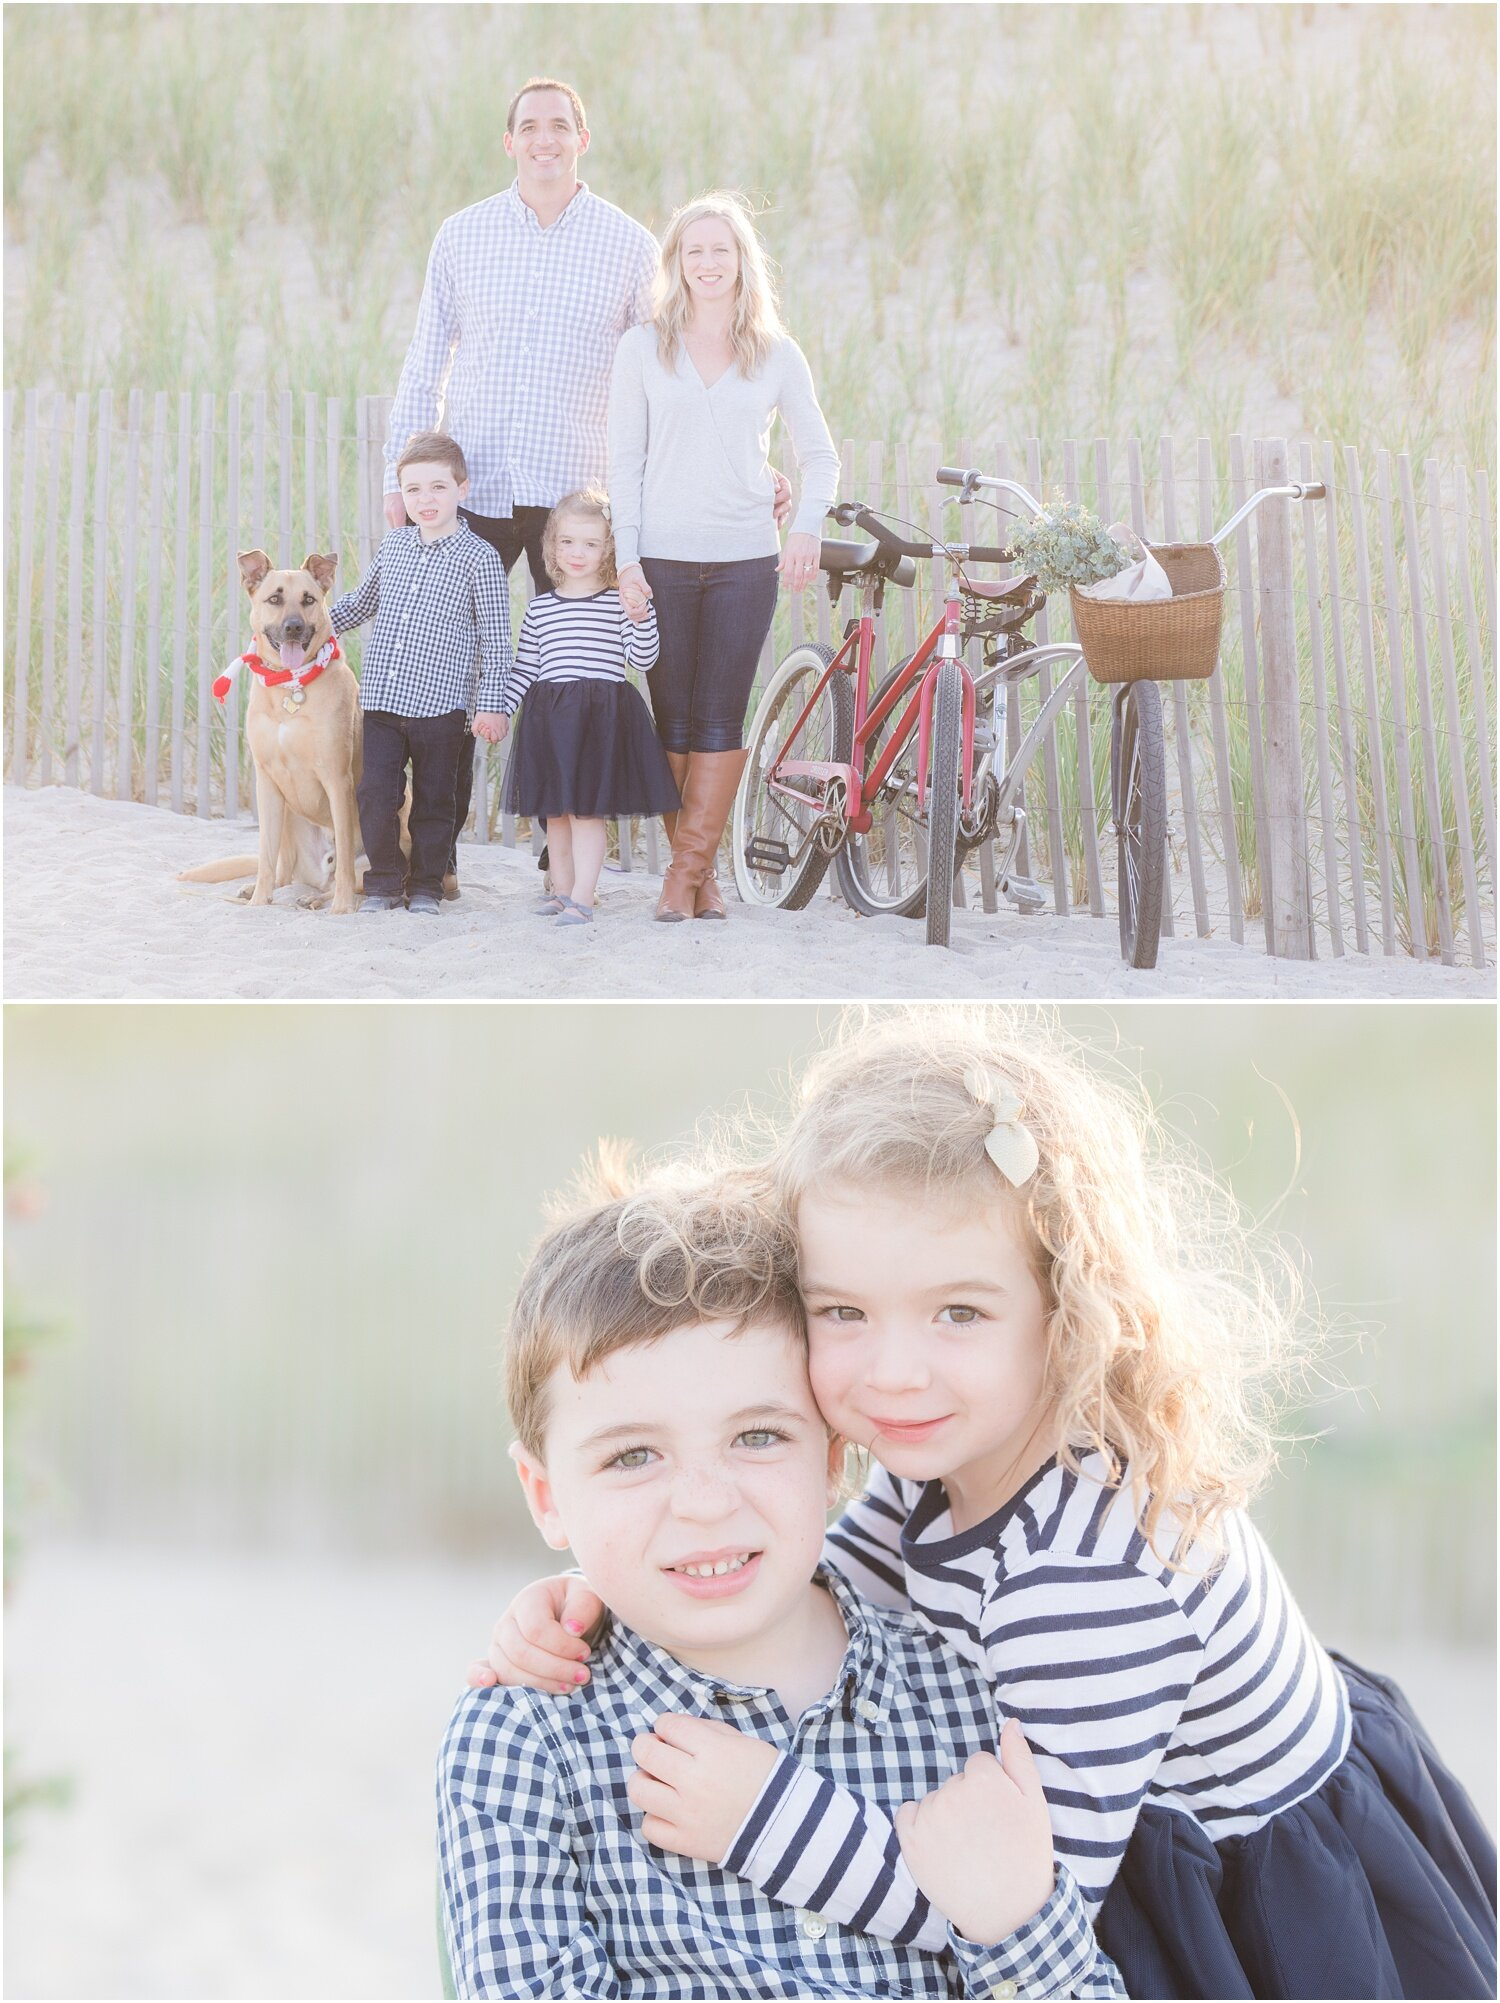 Christmas photos with family dog on the beach in Seaside Park.